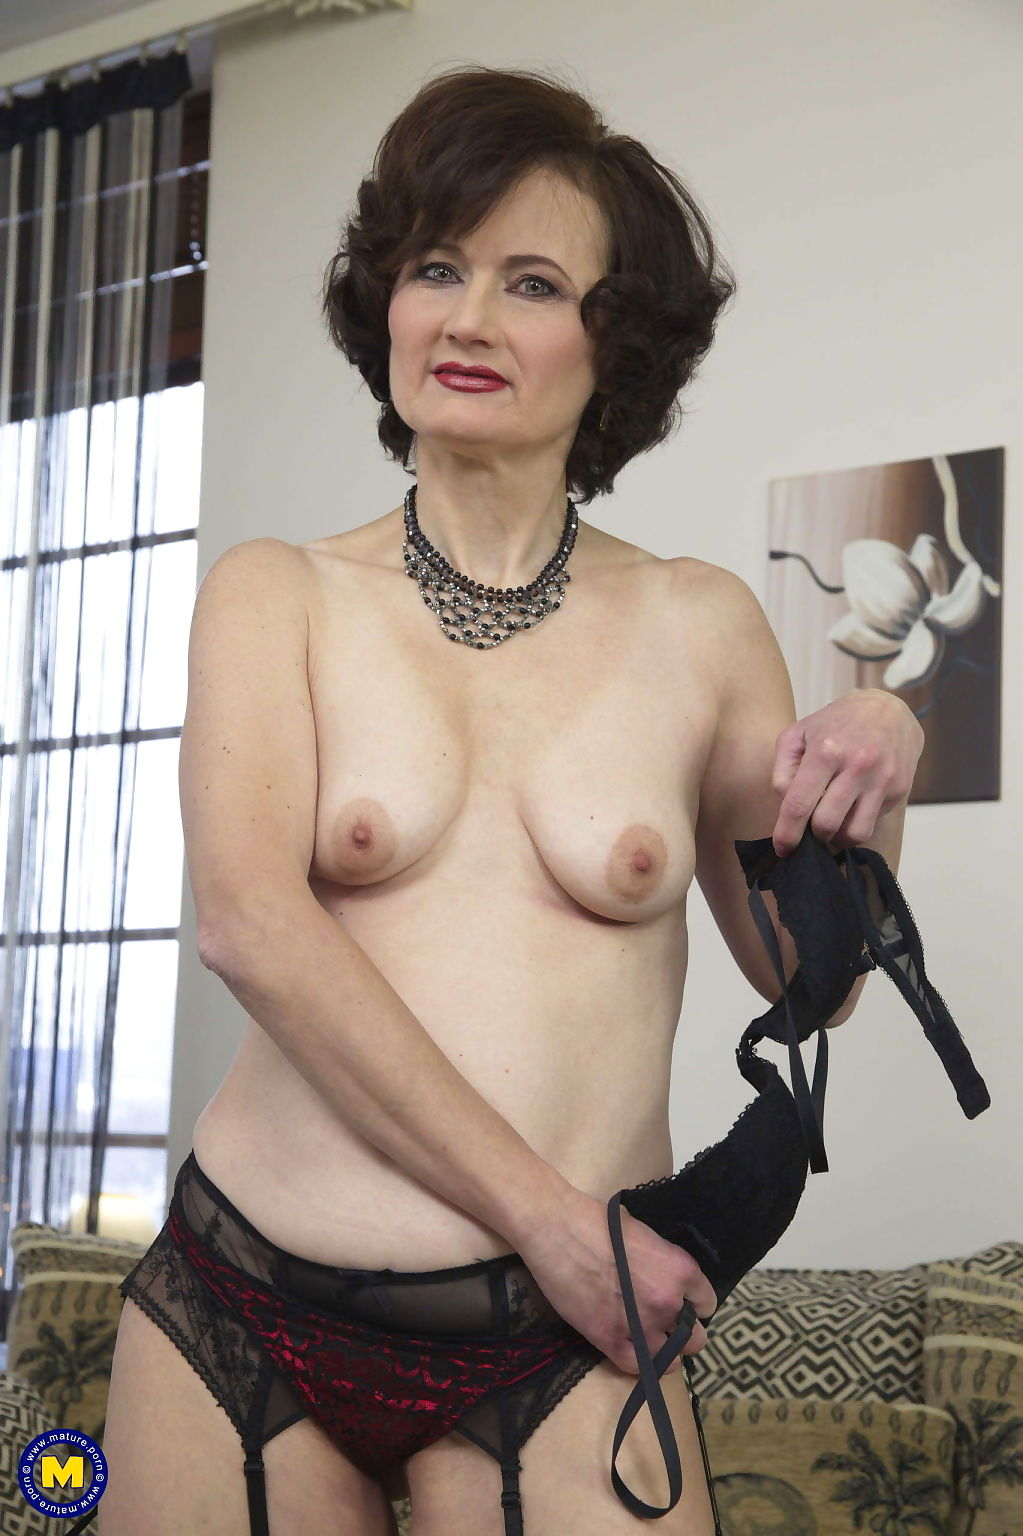 Horny mature lady alice playing with her wet pussy - part 3101